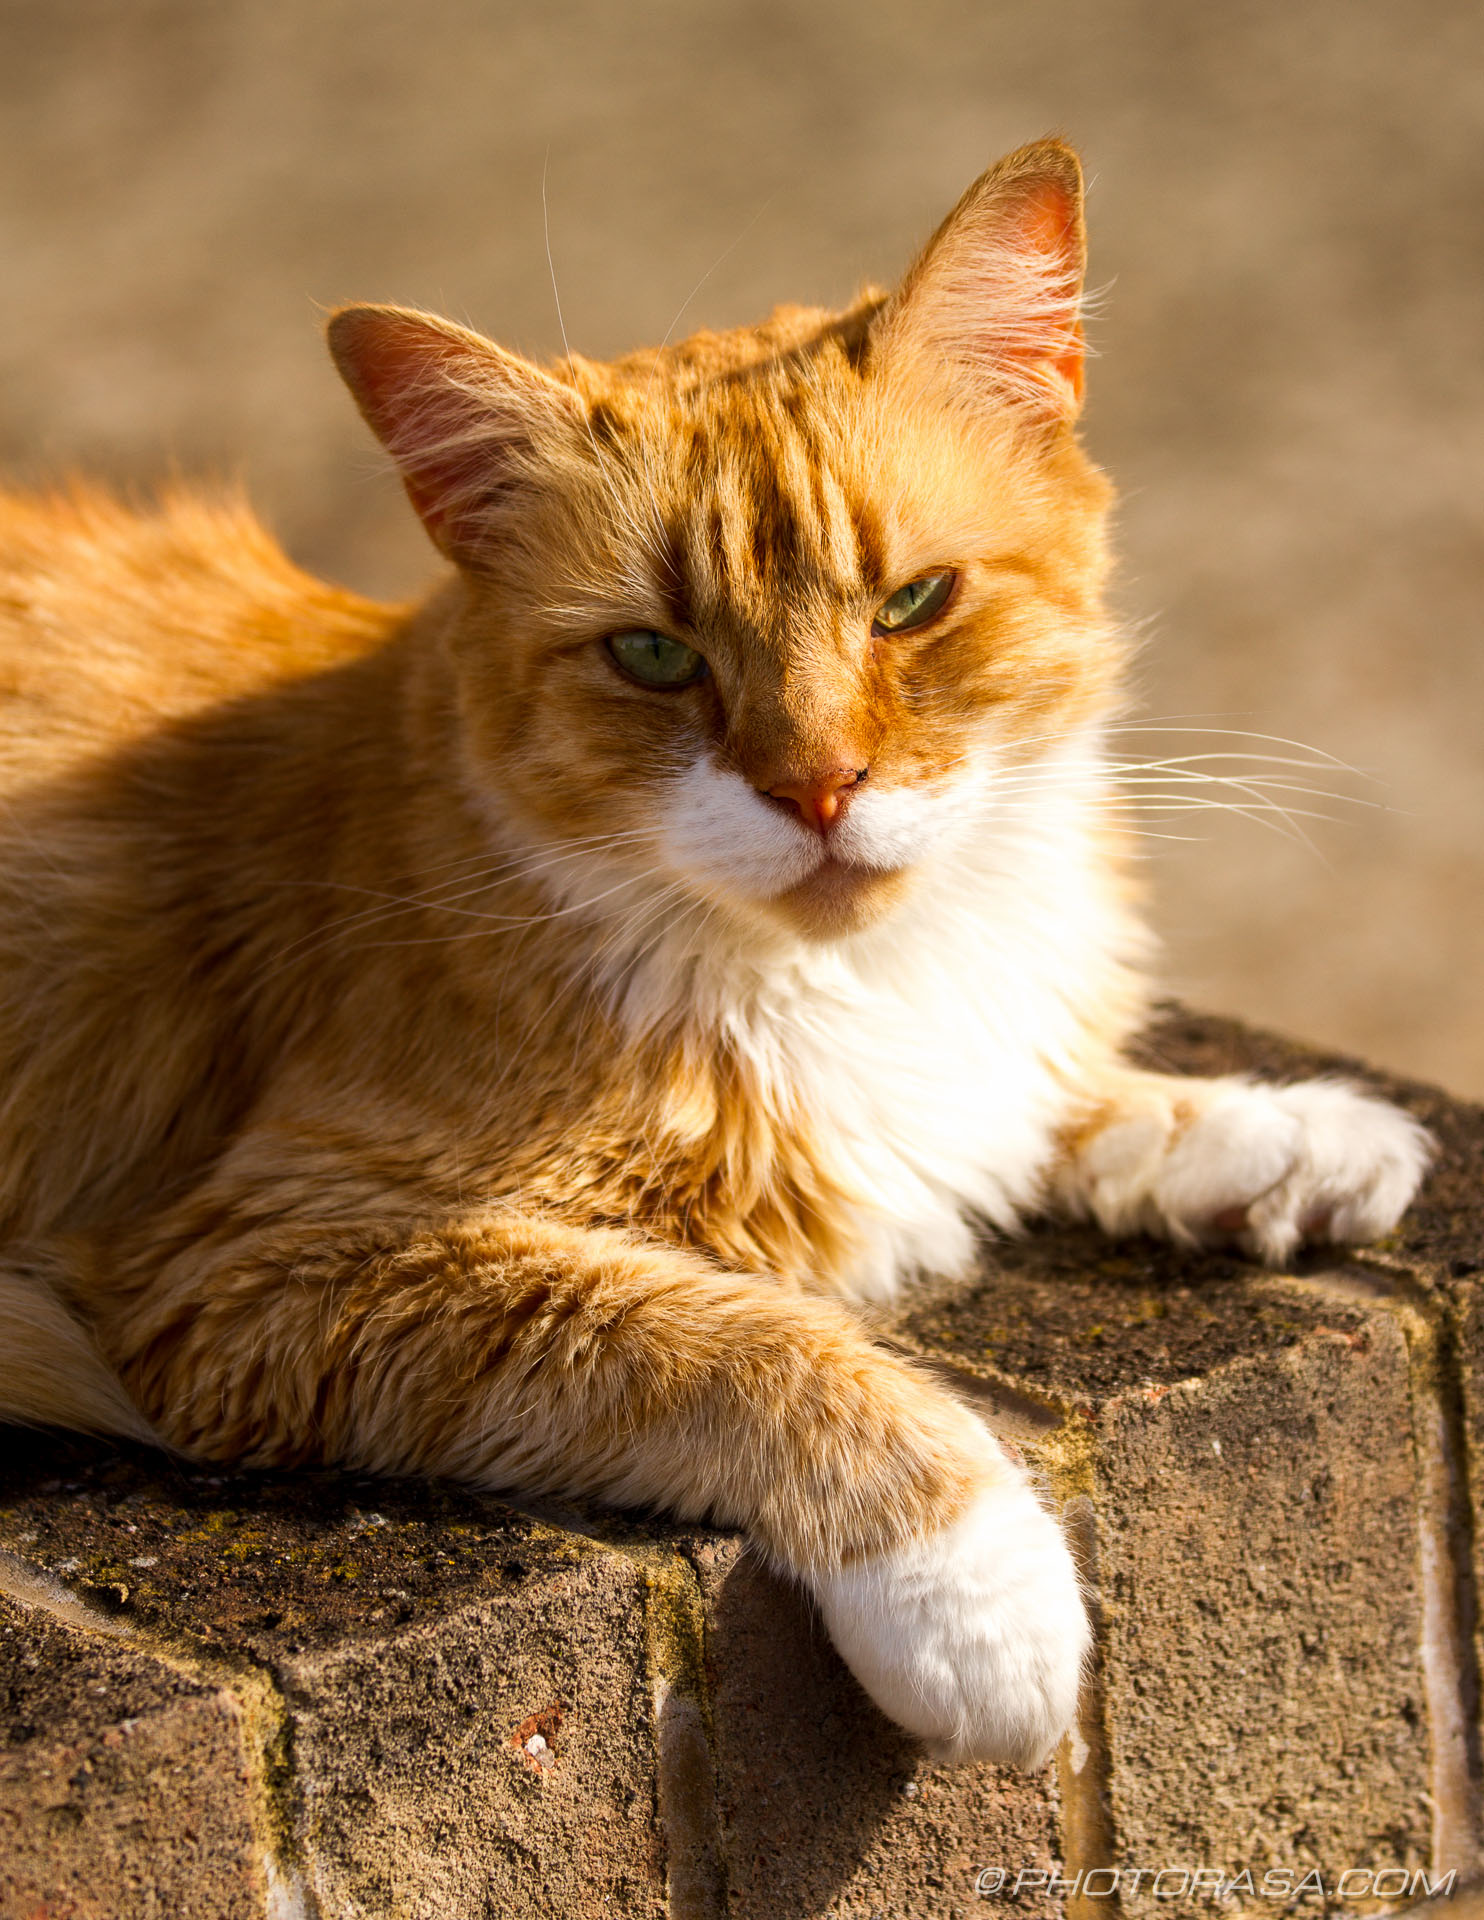 http://photorasa.com/ginger-tabby-cat-suburbia/ginger-tabby-sitting-on-a-wall/